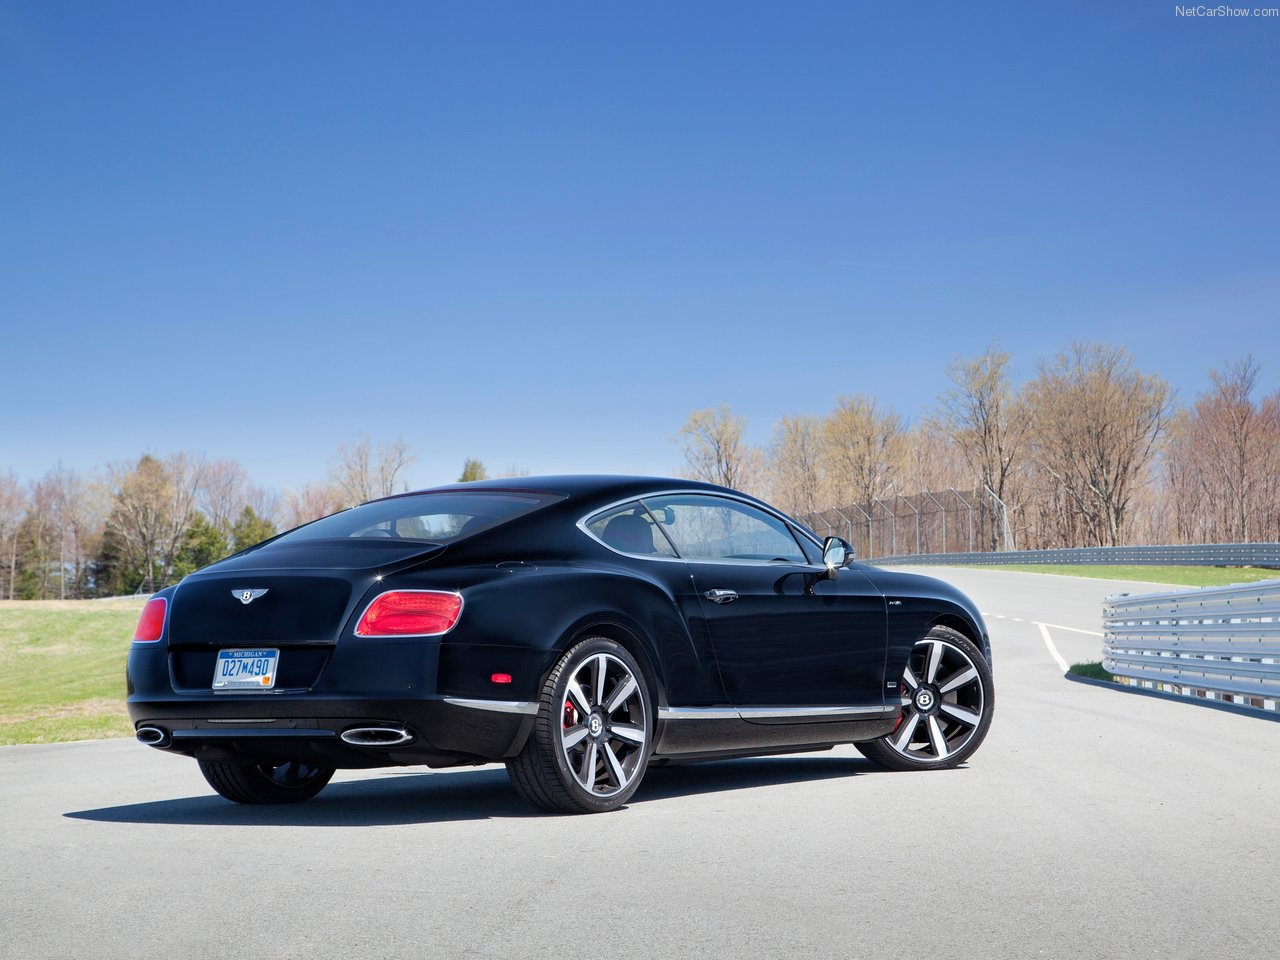 2019 Bentley Continental GT W12 Le Mans Edition photo - 2